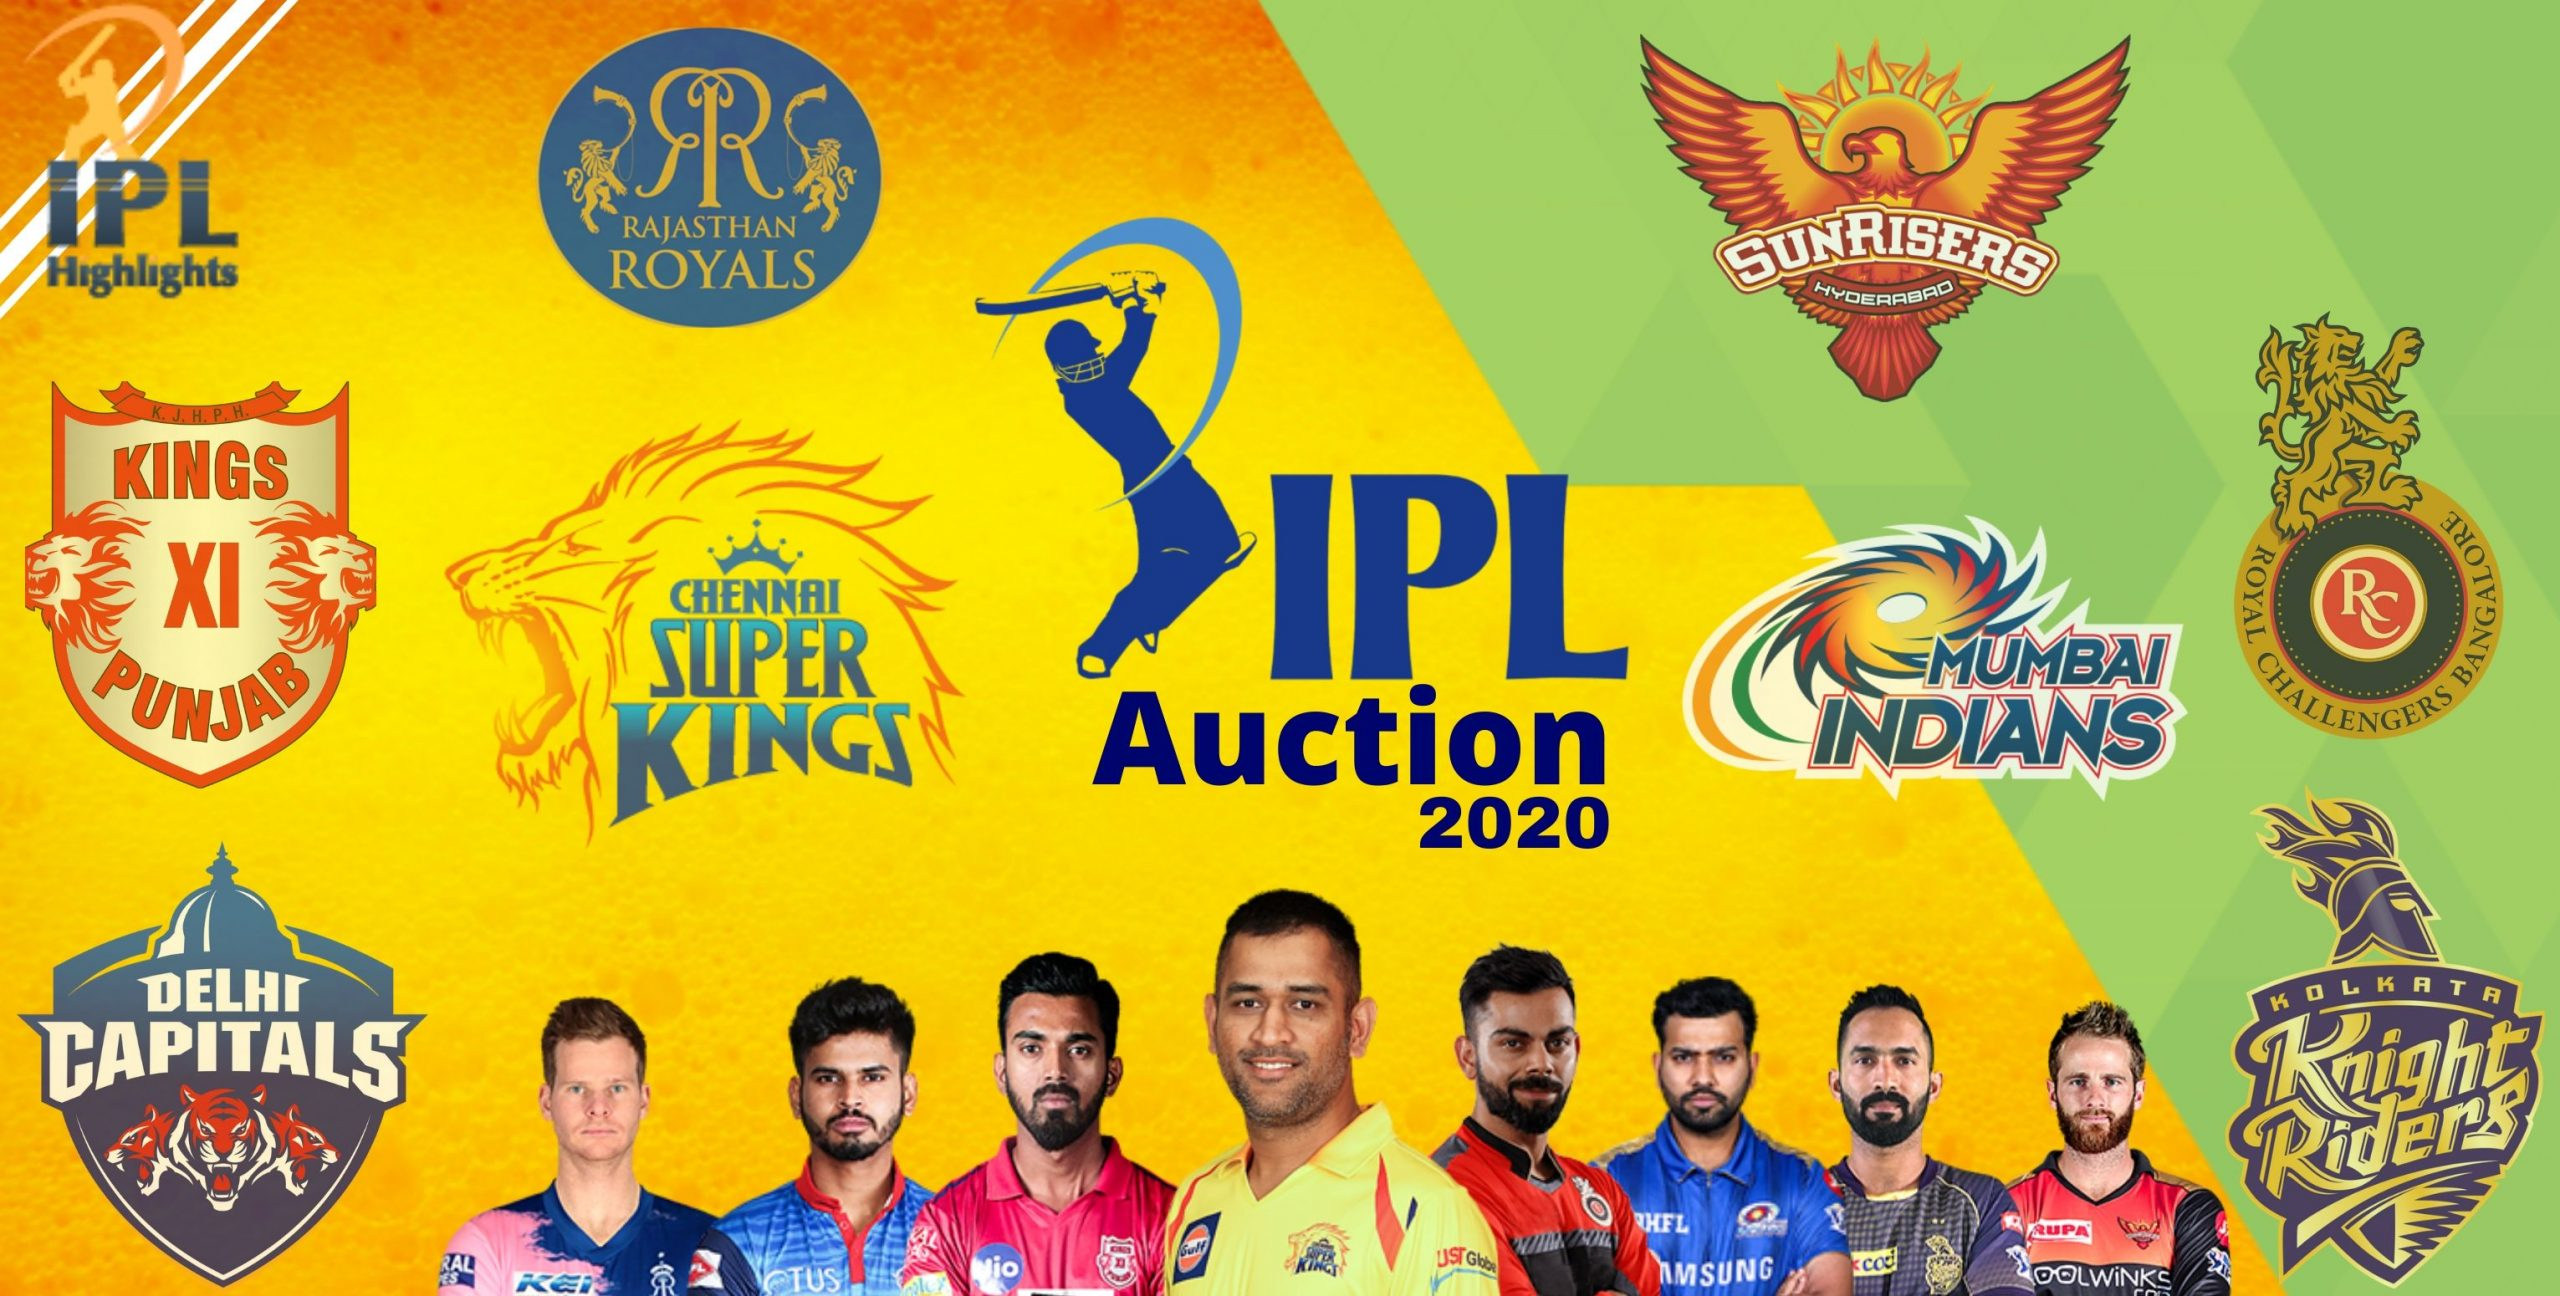 IPL Auction 2020